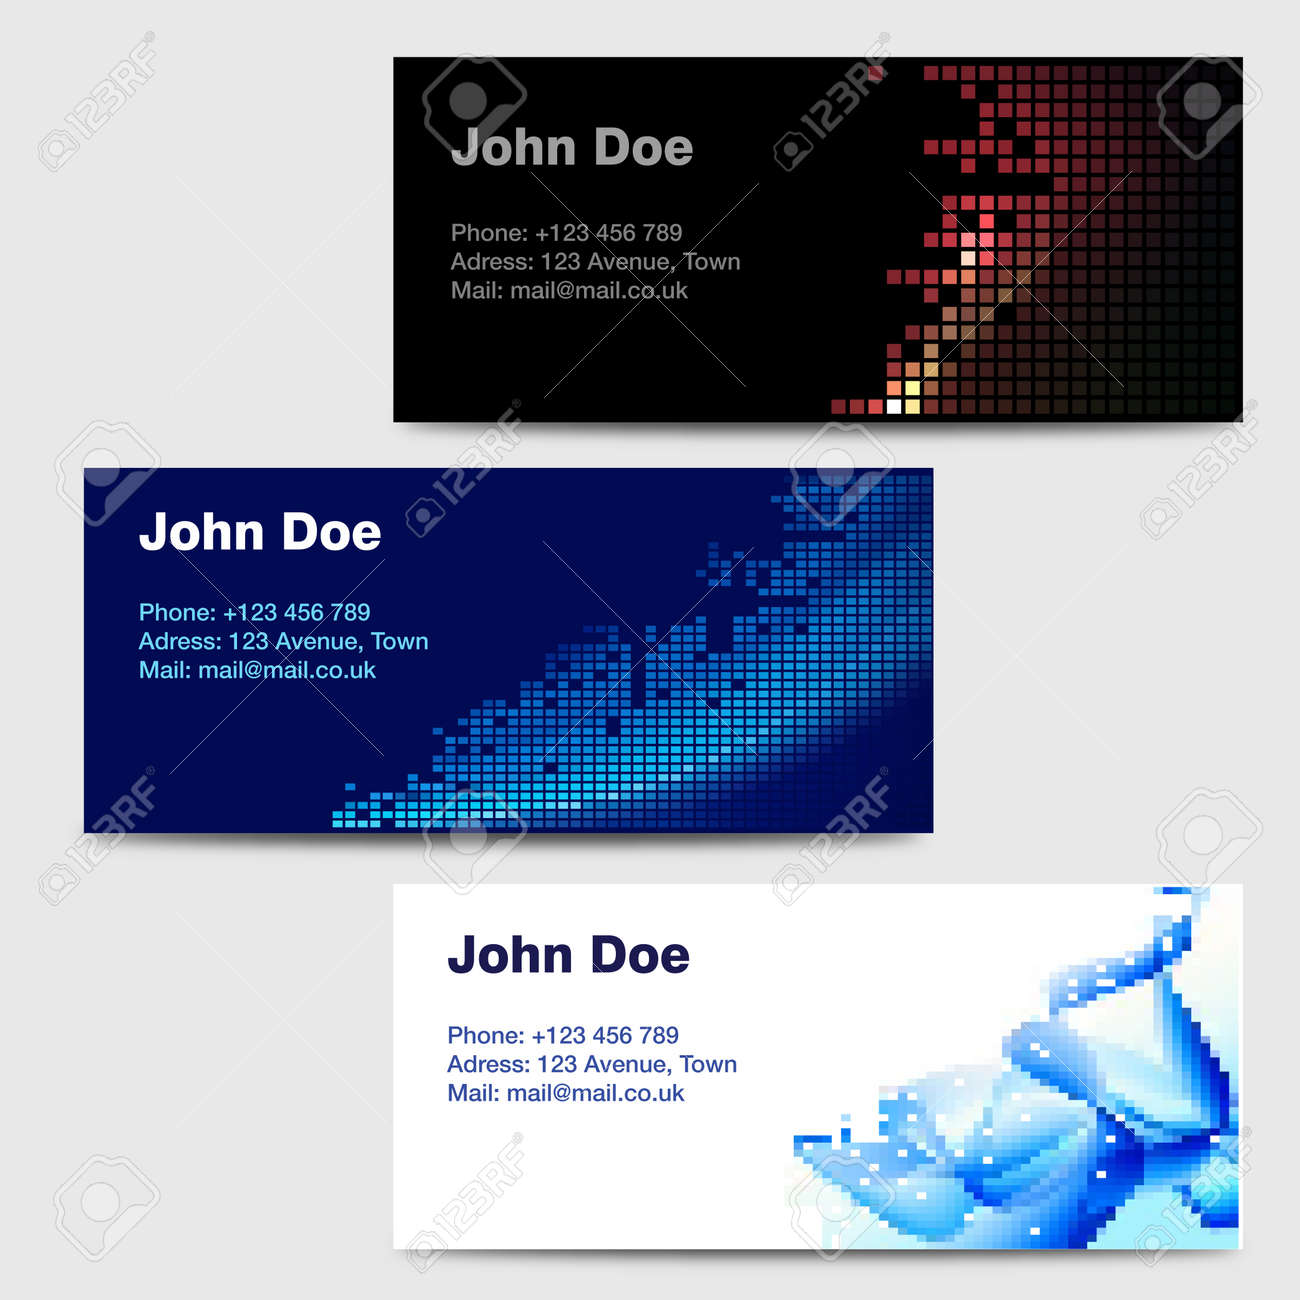 Business Card Templates Stock Vector - 14754004